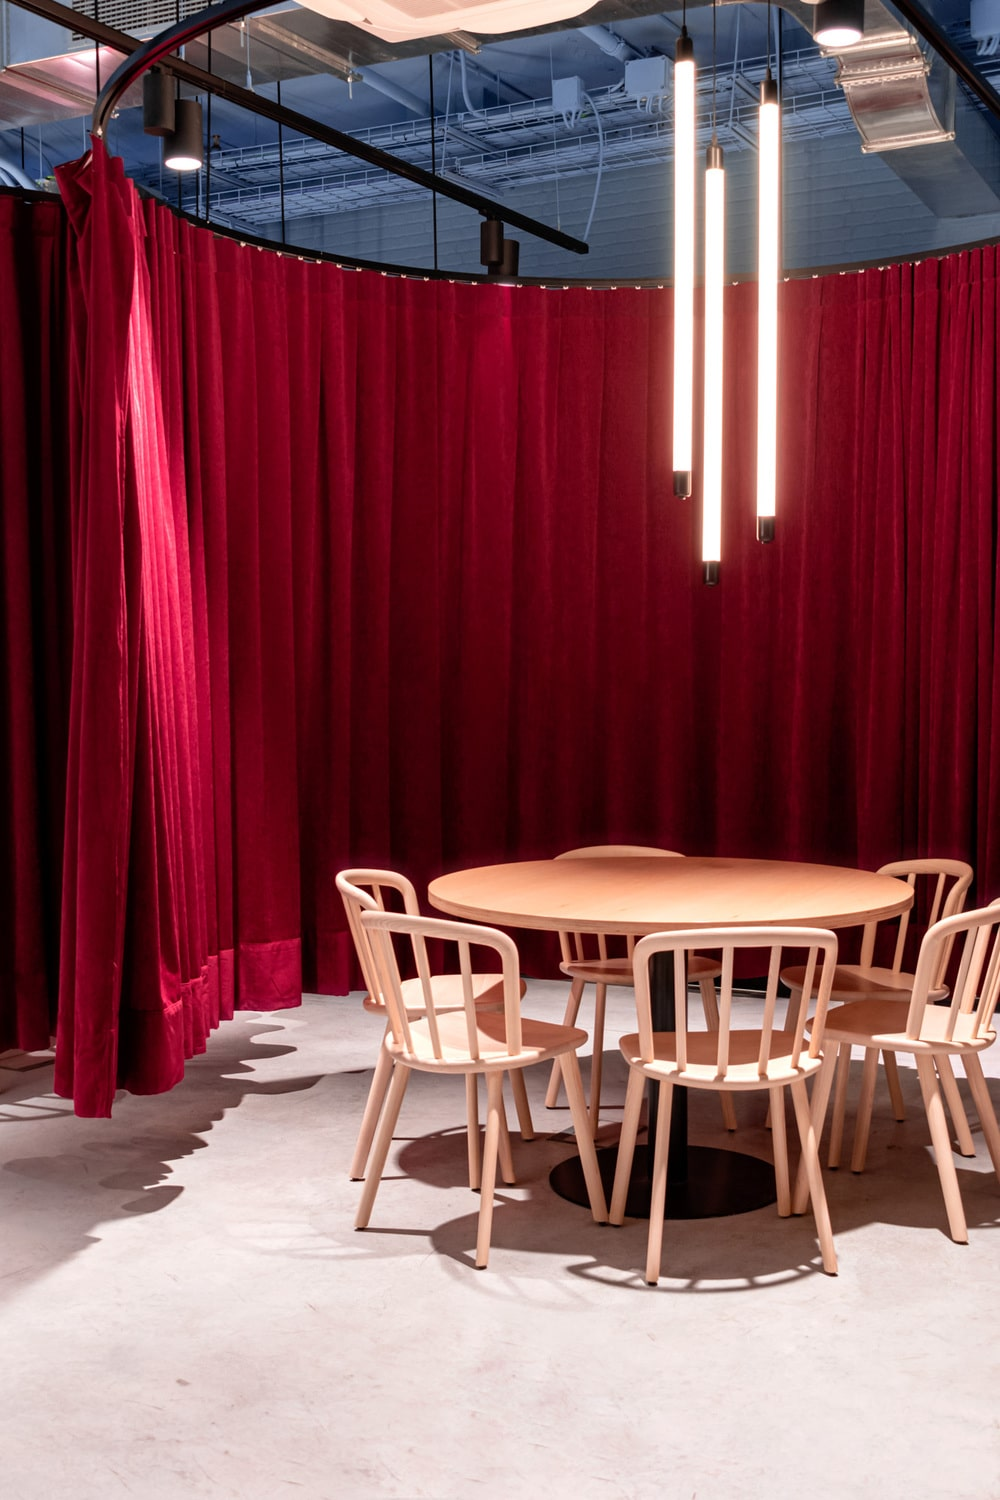 These meeting areas are bordered with red curtains that can dampen the sound and provide visual privacy.